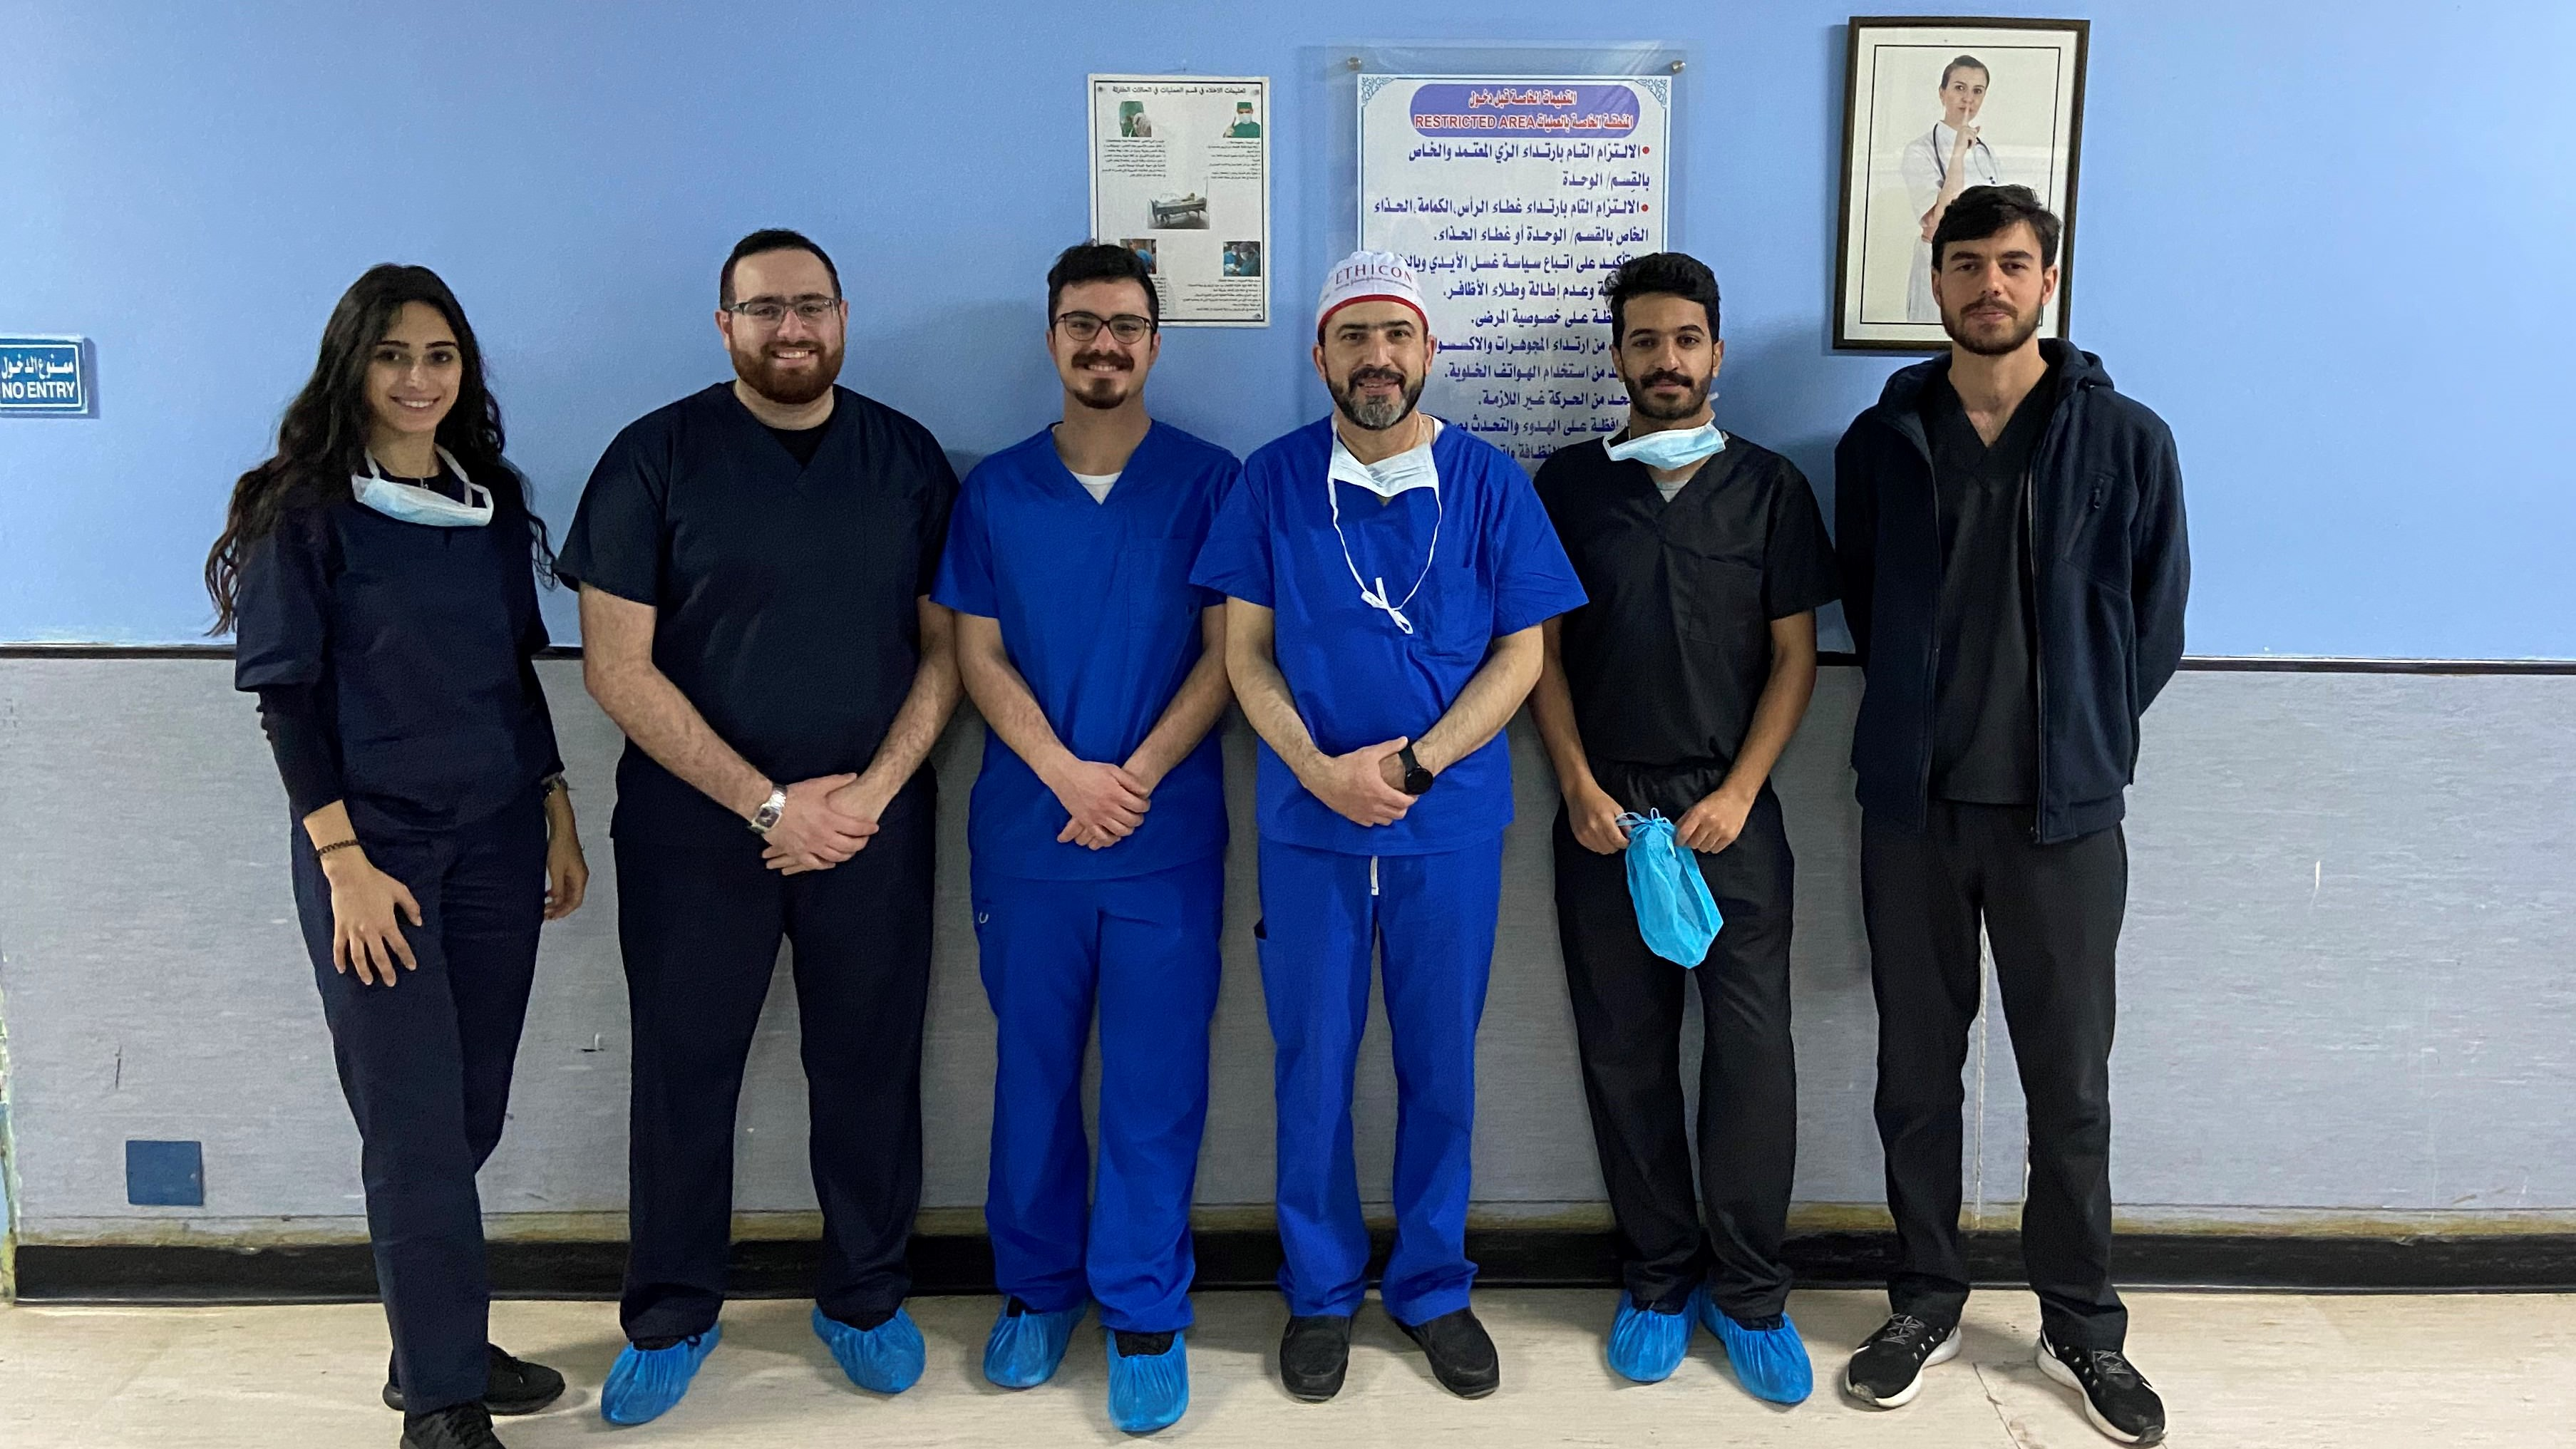 In OR with 4th-year medical students - 26 Feb. 2020